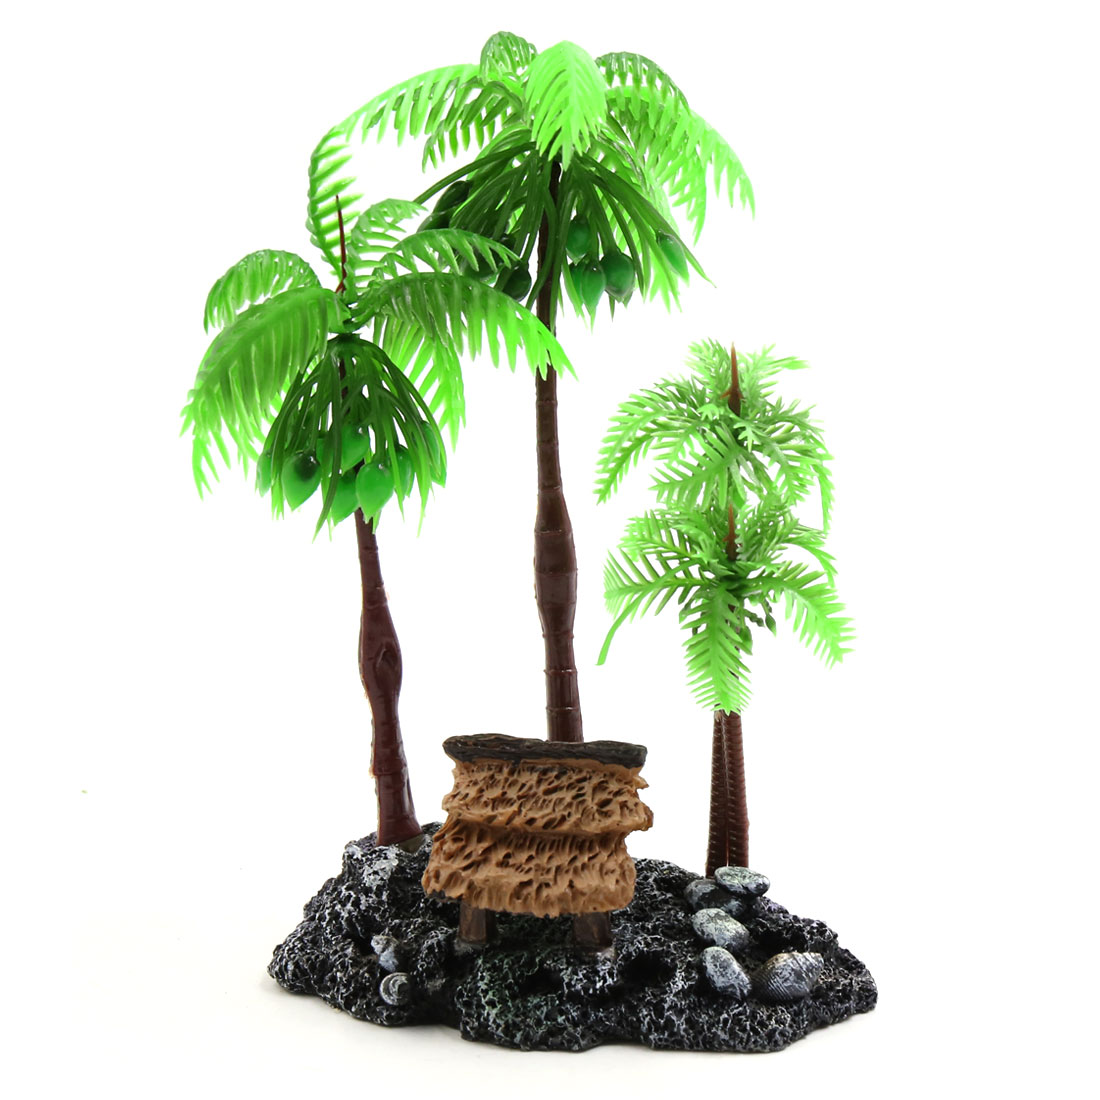 Green Plastic Coconut Tree Plant Decor Ornaments for Reptiles Amphibians